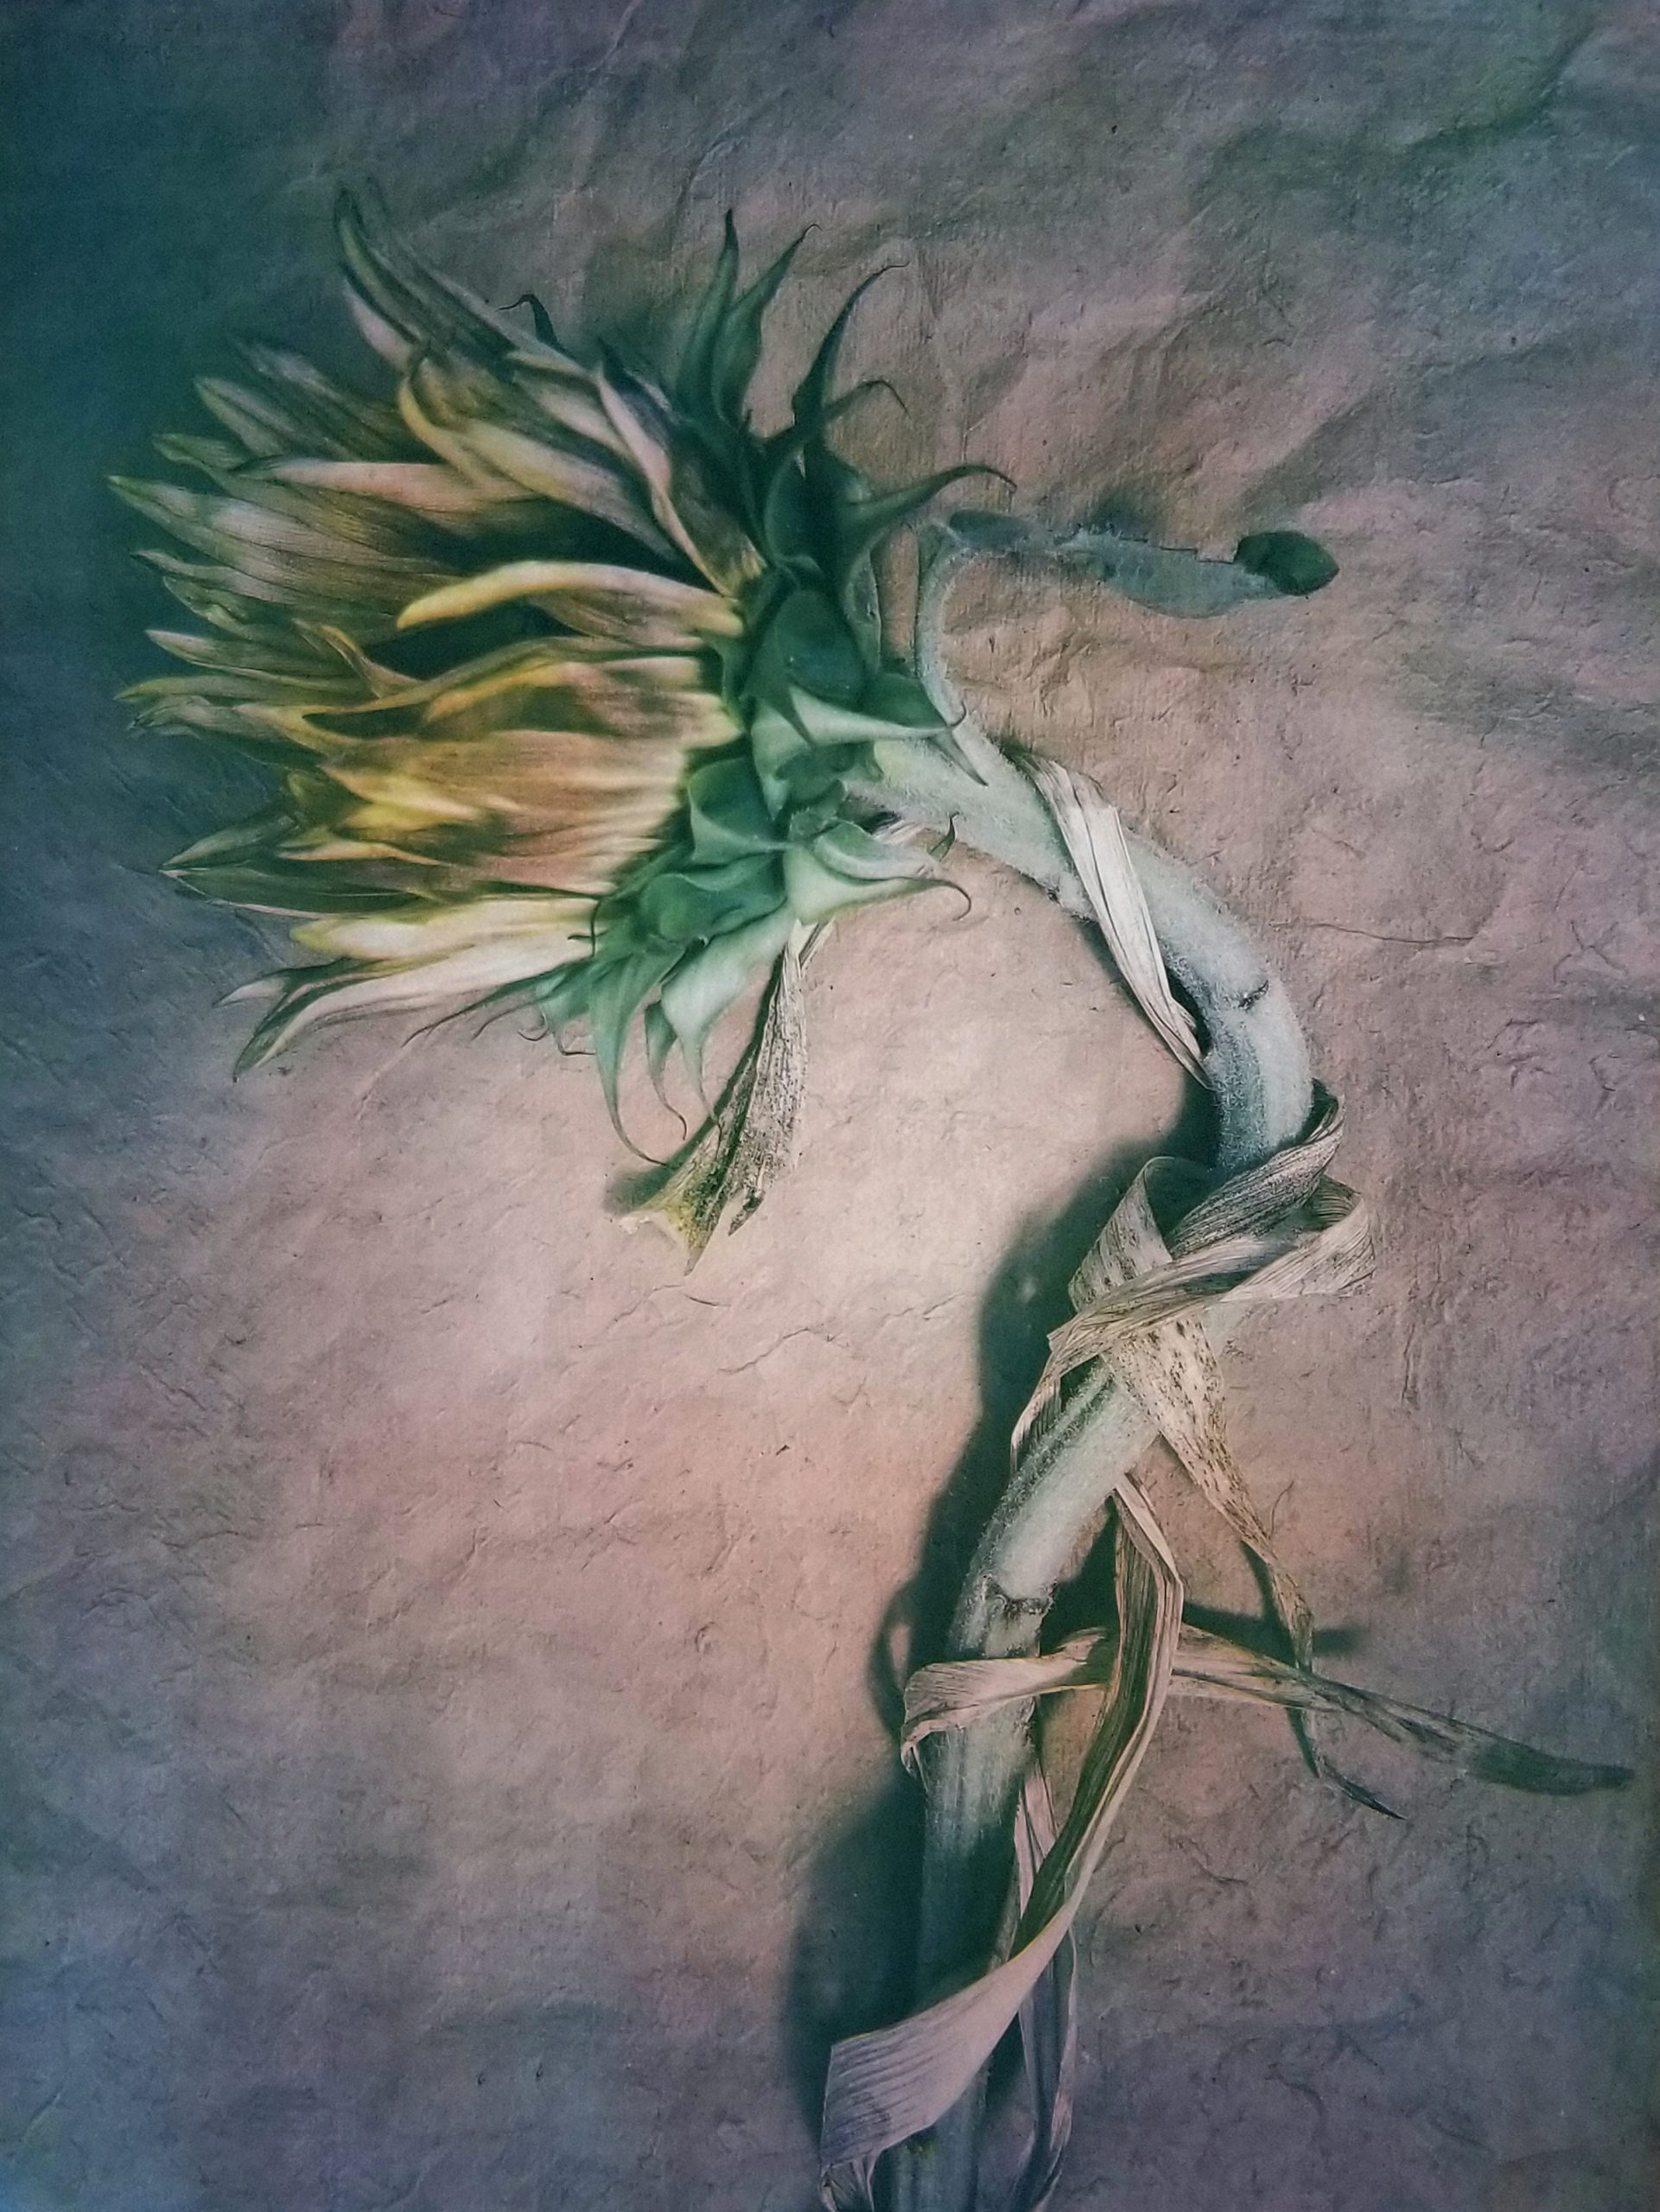 Diana H. Bloomfield, Sunflower, 2018. Courtesy of the artist.